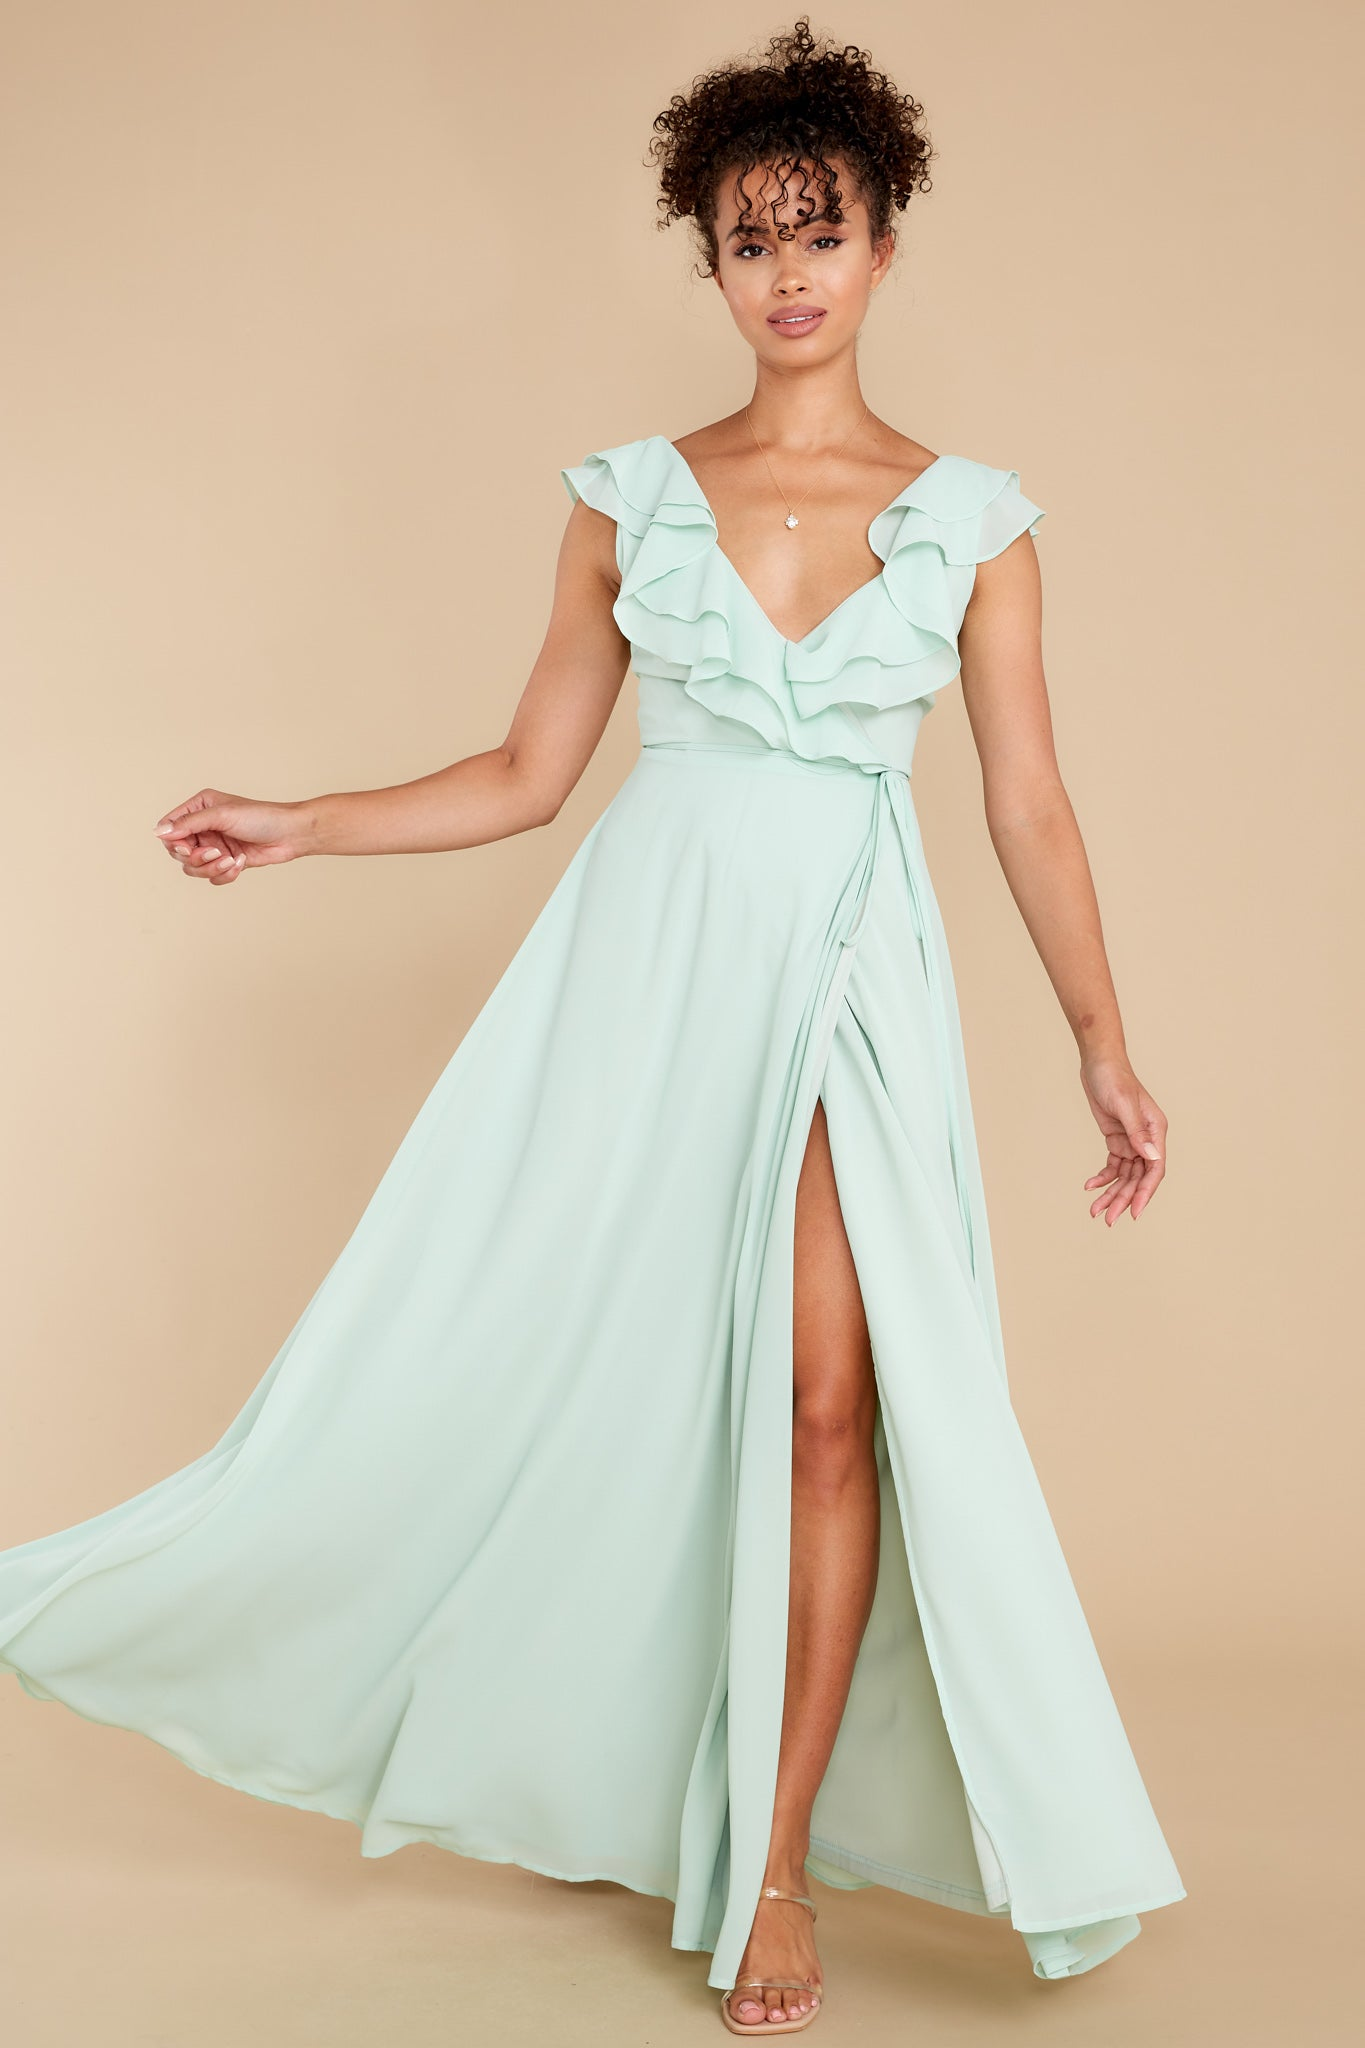 70s Prom, Formal, Evening, Party Dresses Aura Moments Like This Mint Maxi Dress $56.00 AT vintagedancer.com